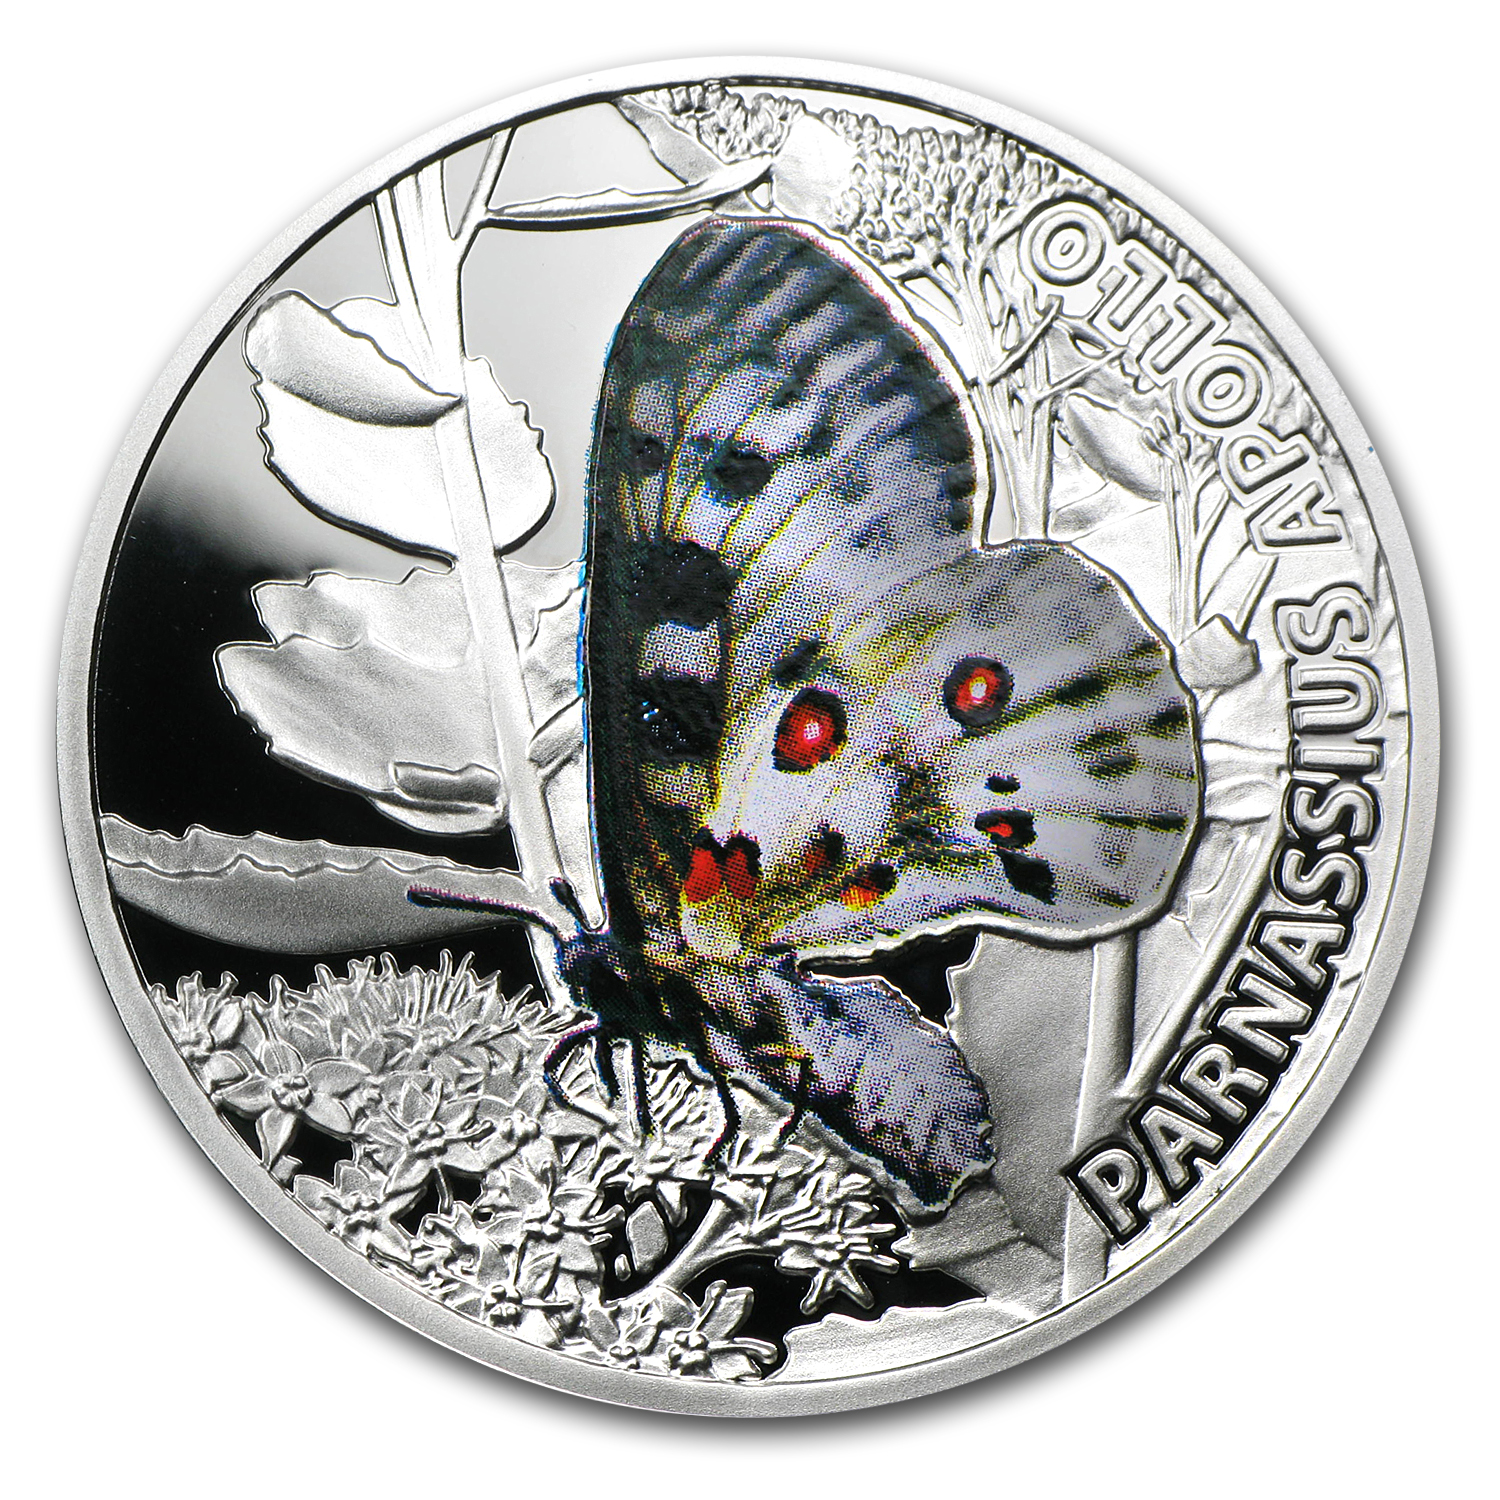 Niue 2010 Proof Silver $1 Butterflies - Apollo